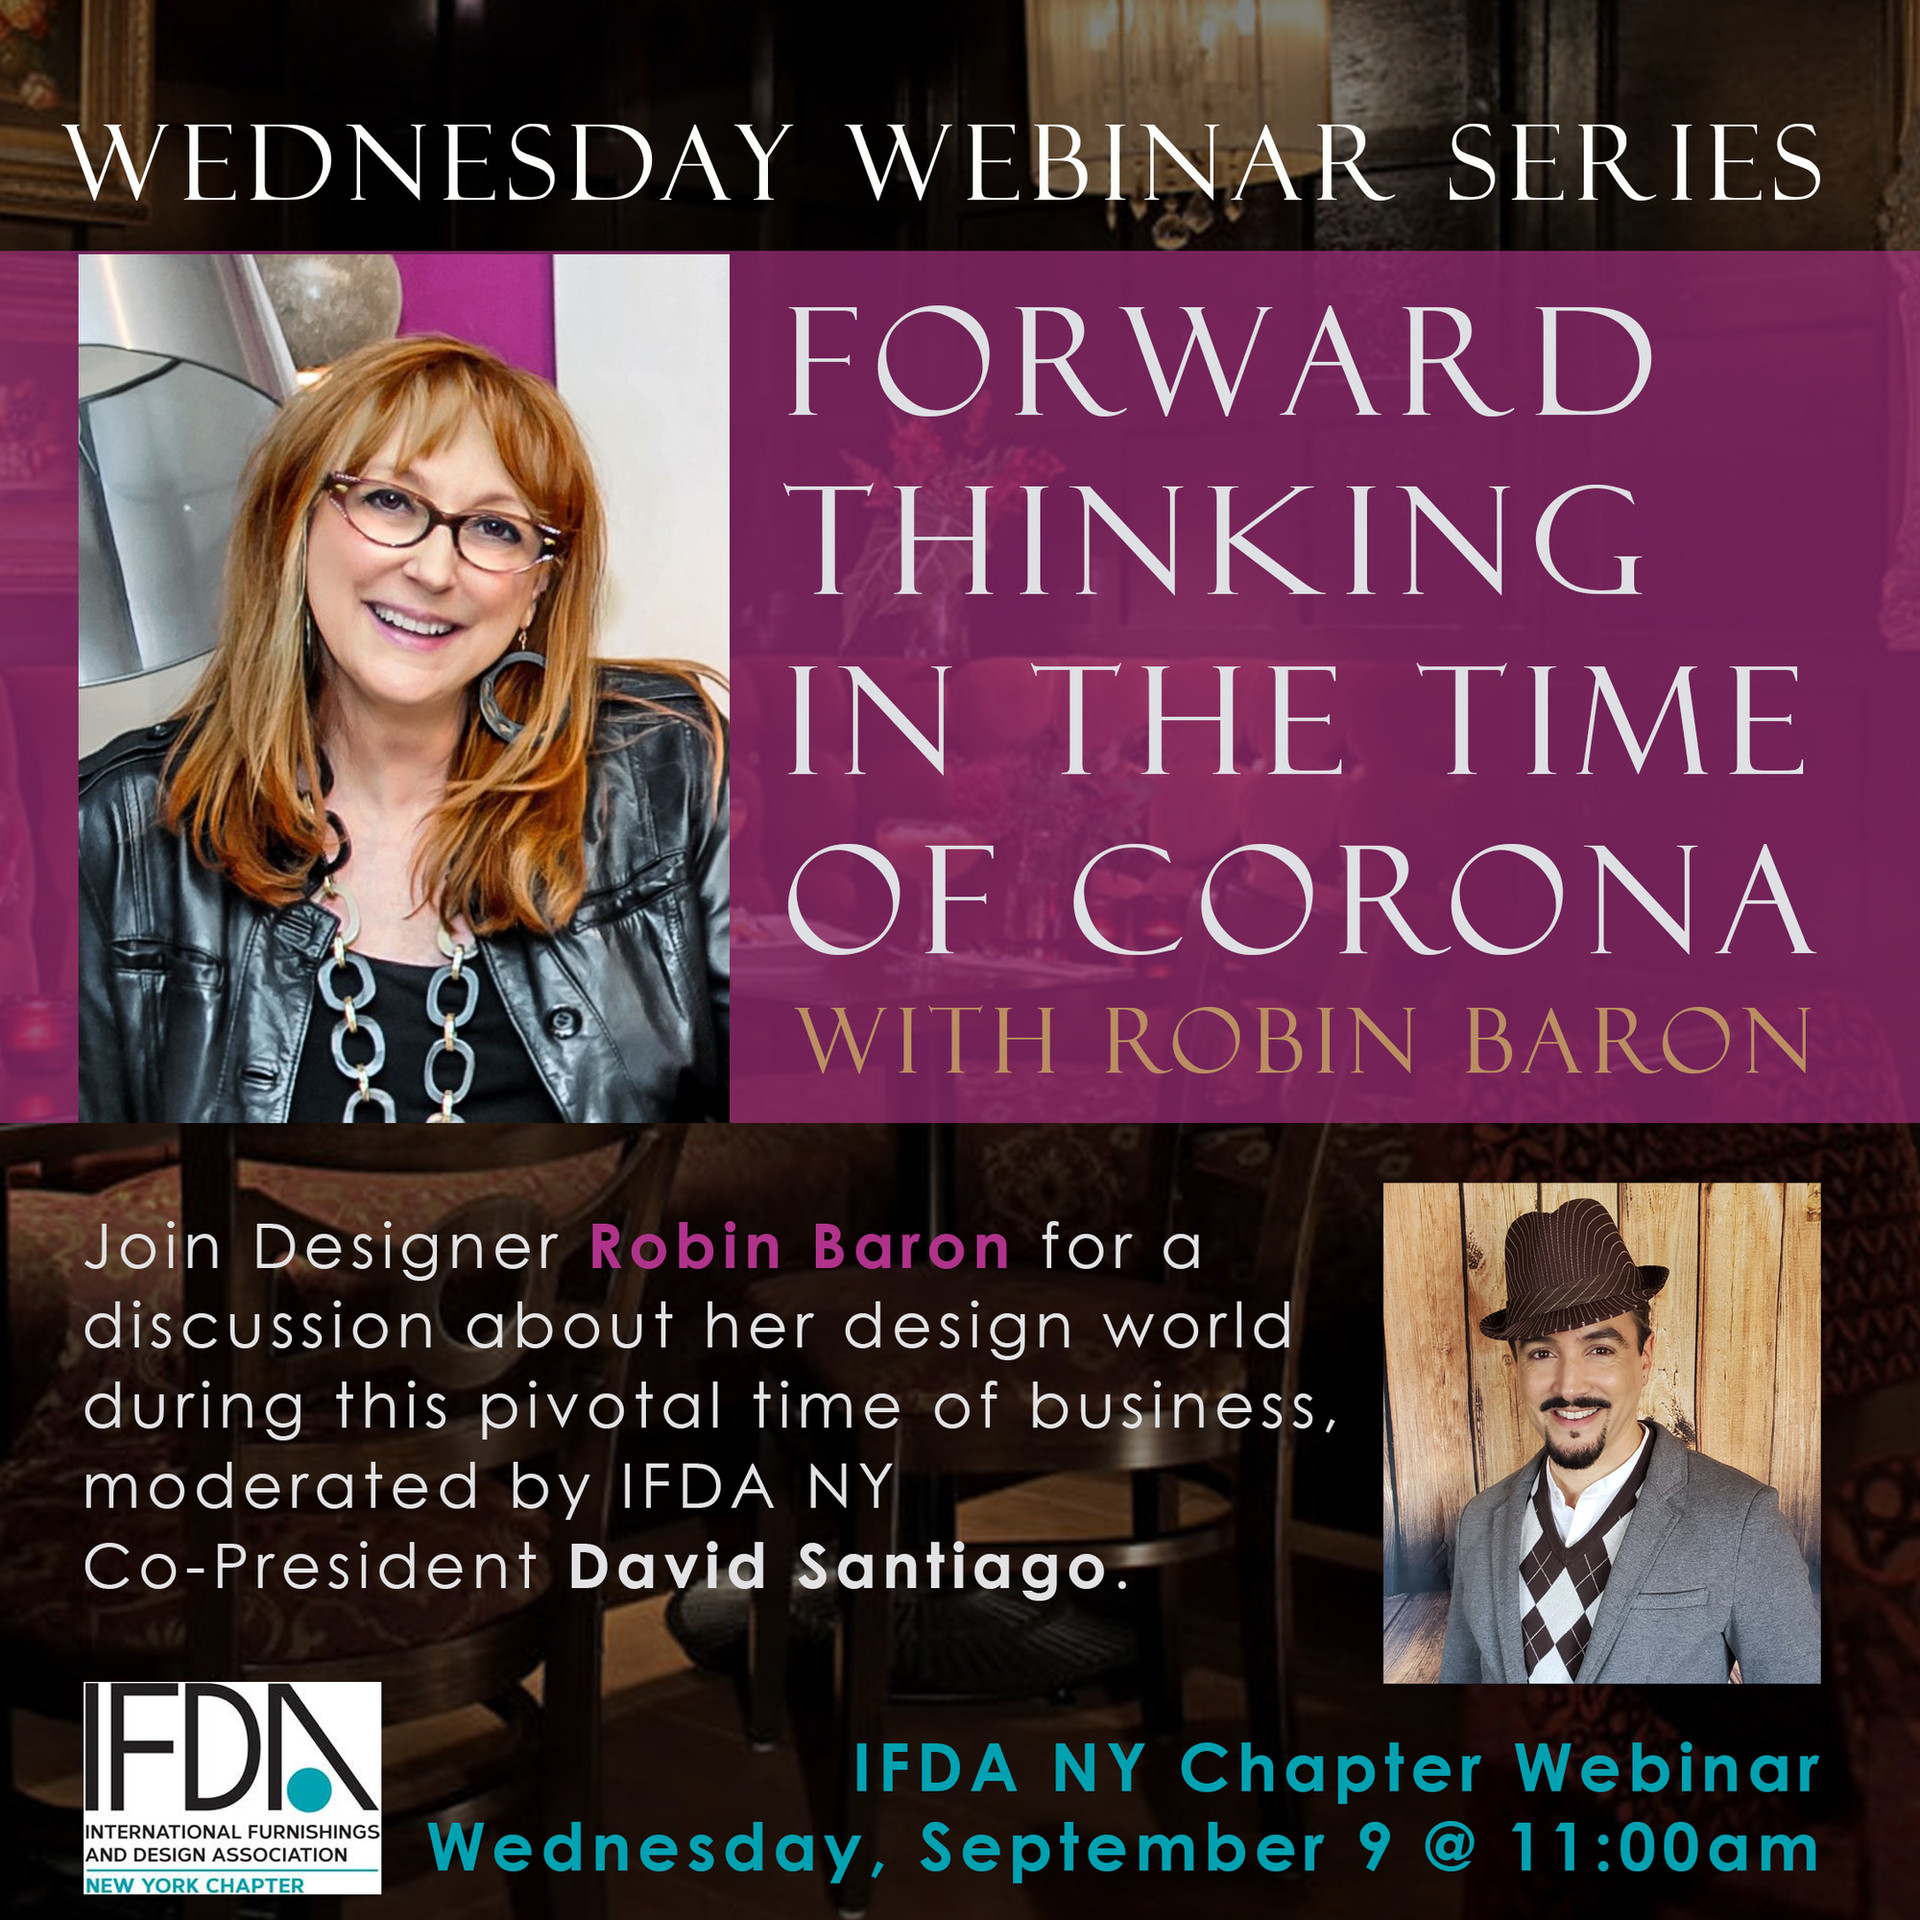 Forward Thinking in the Time of Corona with Robin Baron